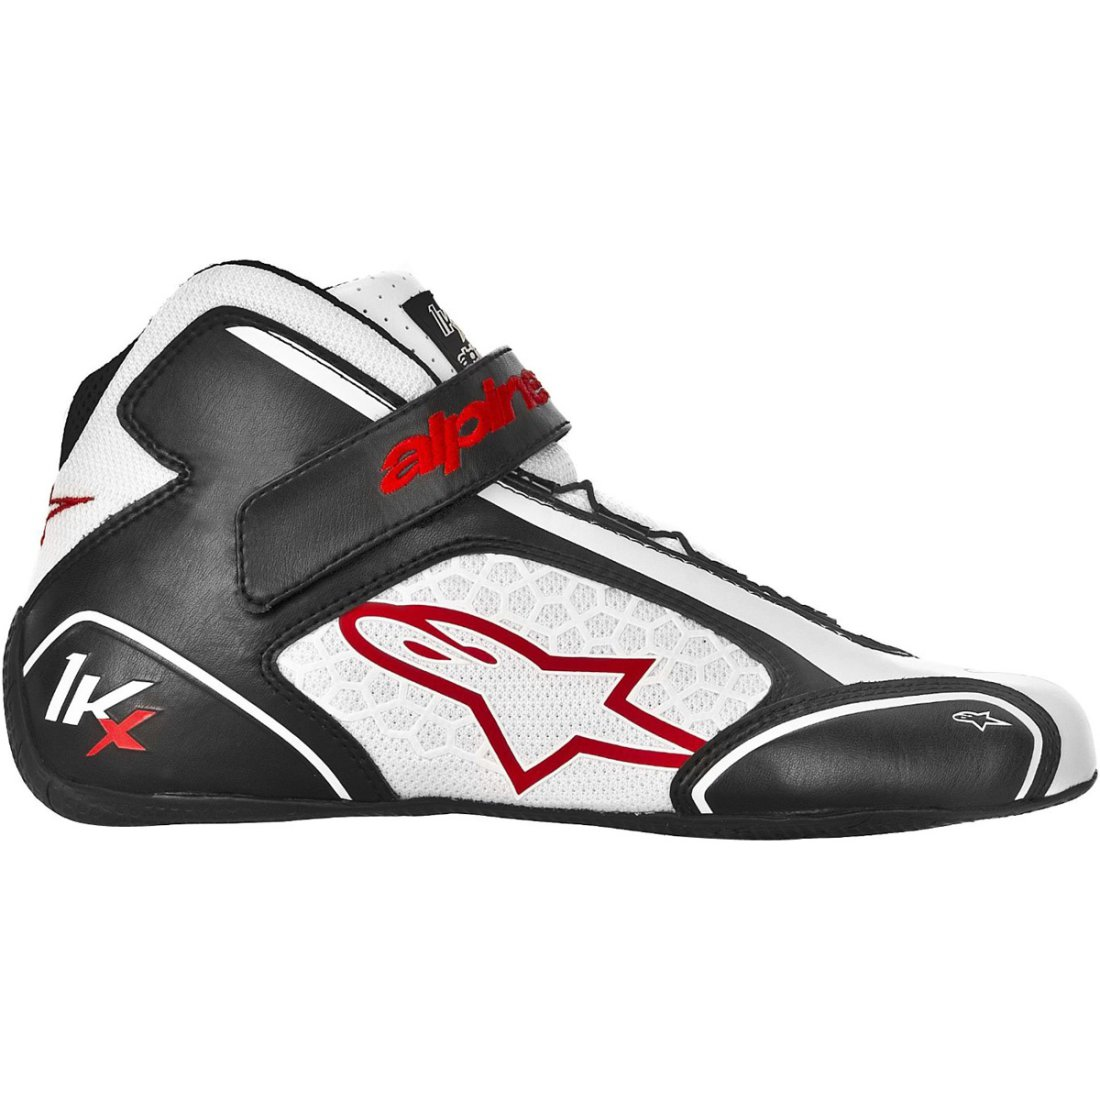 alpinestars tech 1 kx black white red shoe motocard. Black Bedroom Furniture Sets. Home Design Ideas